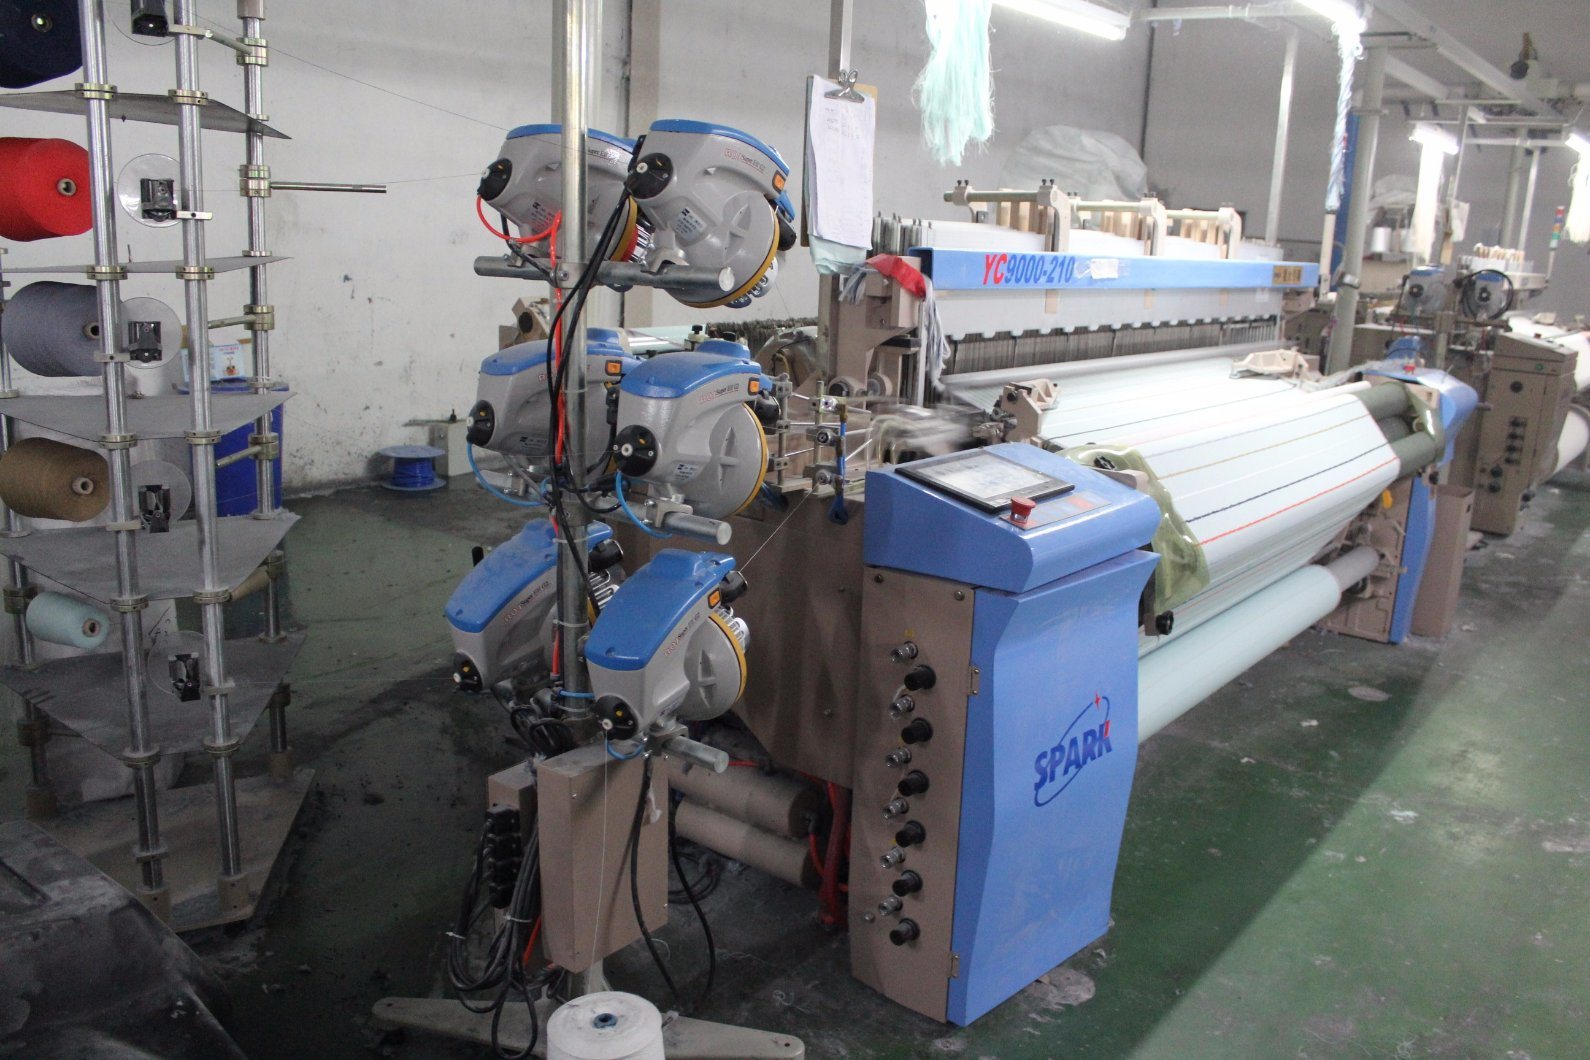 Spark Most Energy Saving Yc910 Air Jet Loom